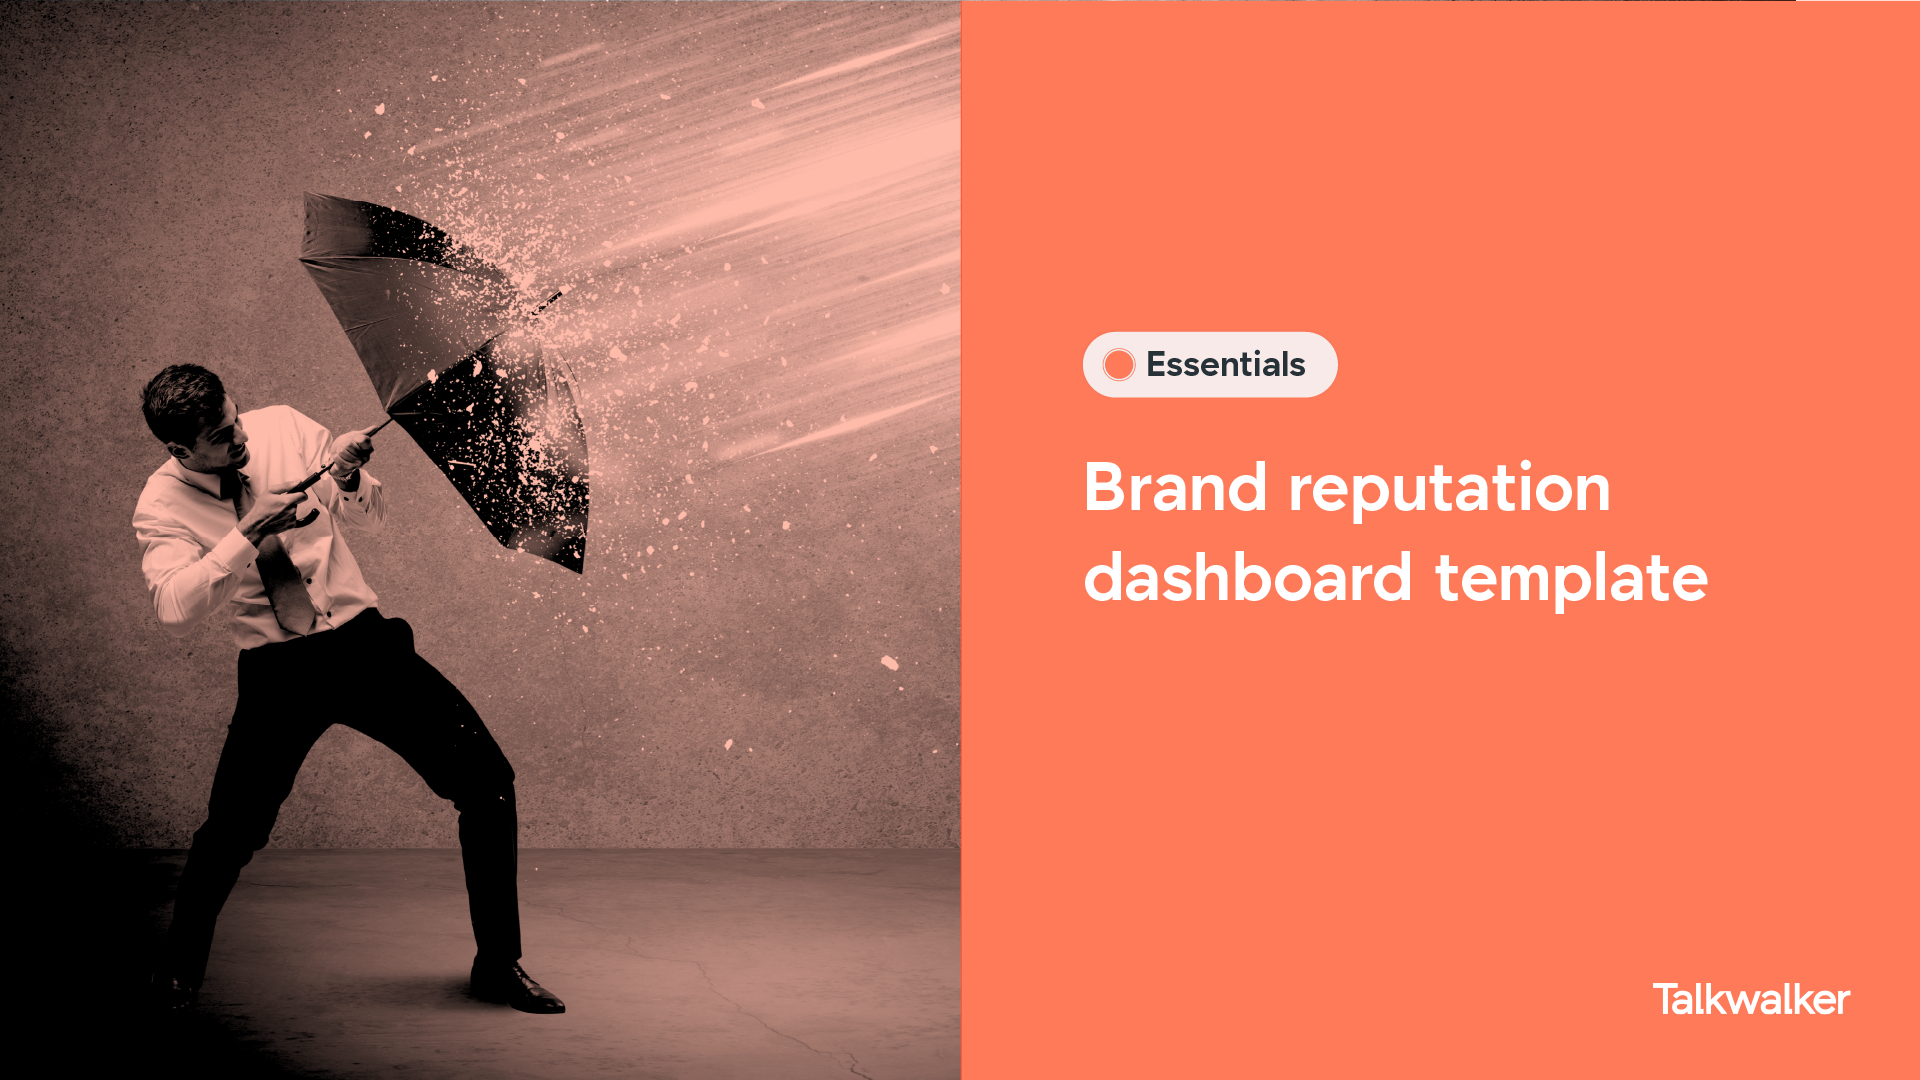 Brand reputation dashboard template illustrated with a man holding an umbrella, protecting himself against powerful rain.